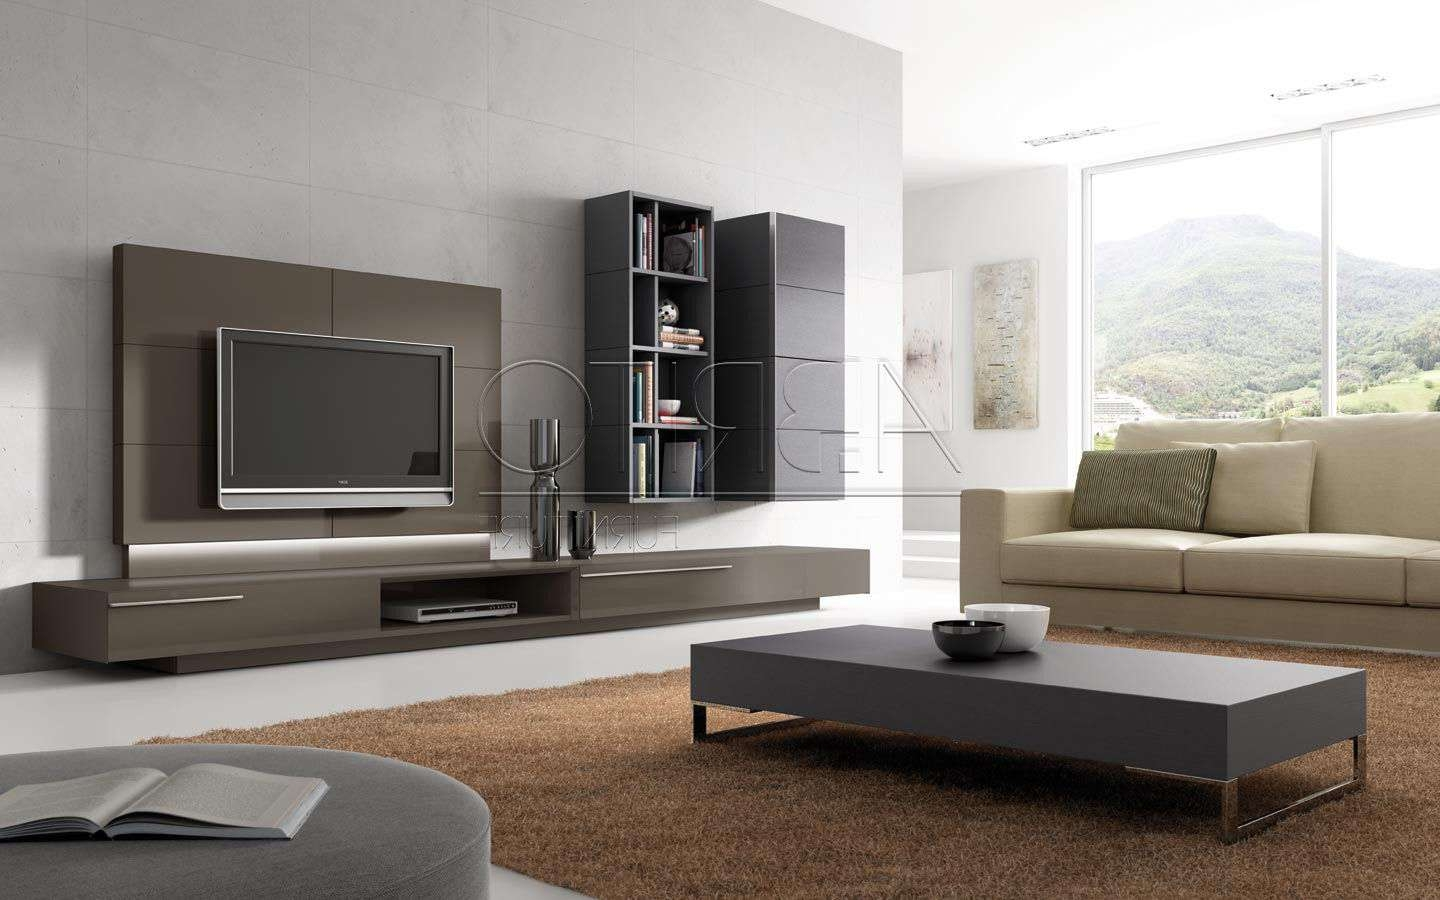 Furniture: Coffee Table And Aera Rug With Ottoman Also Modern Tv With Regard To Modern Tv Cabinets (View 15 of 20)